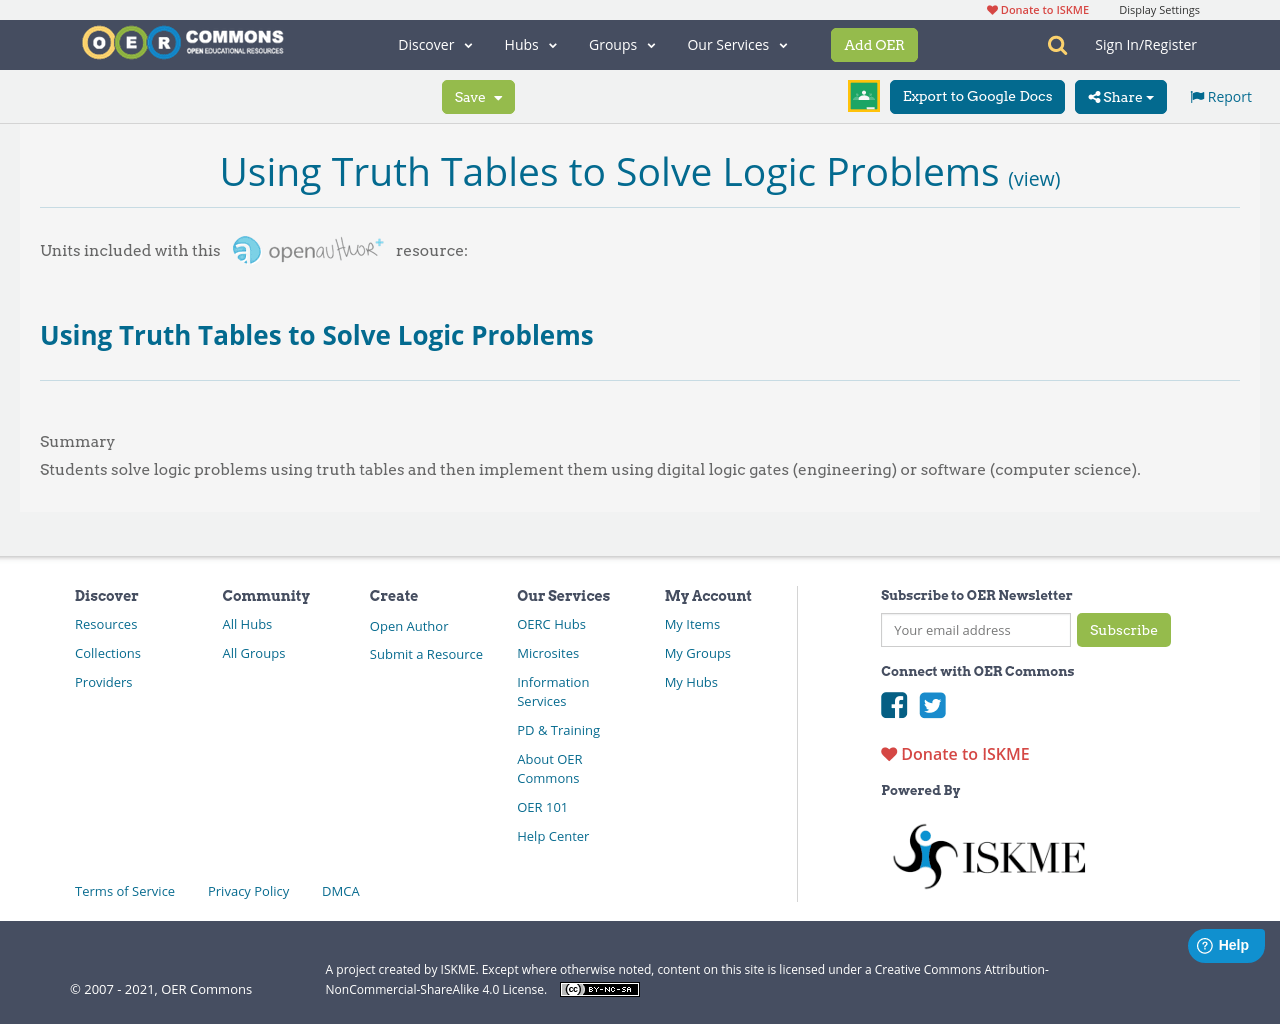 Using Truth Tables To Solve Logic Problems